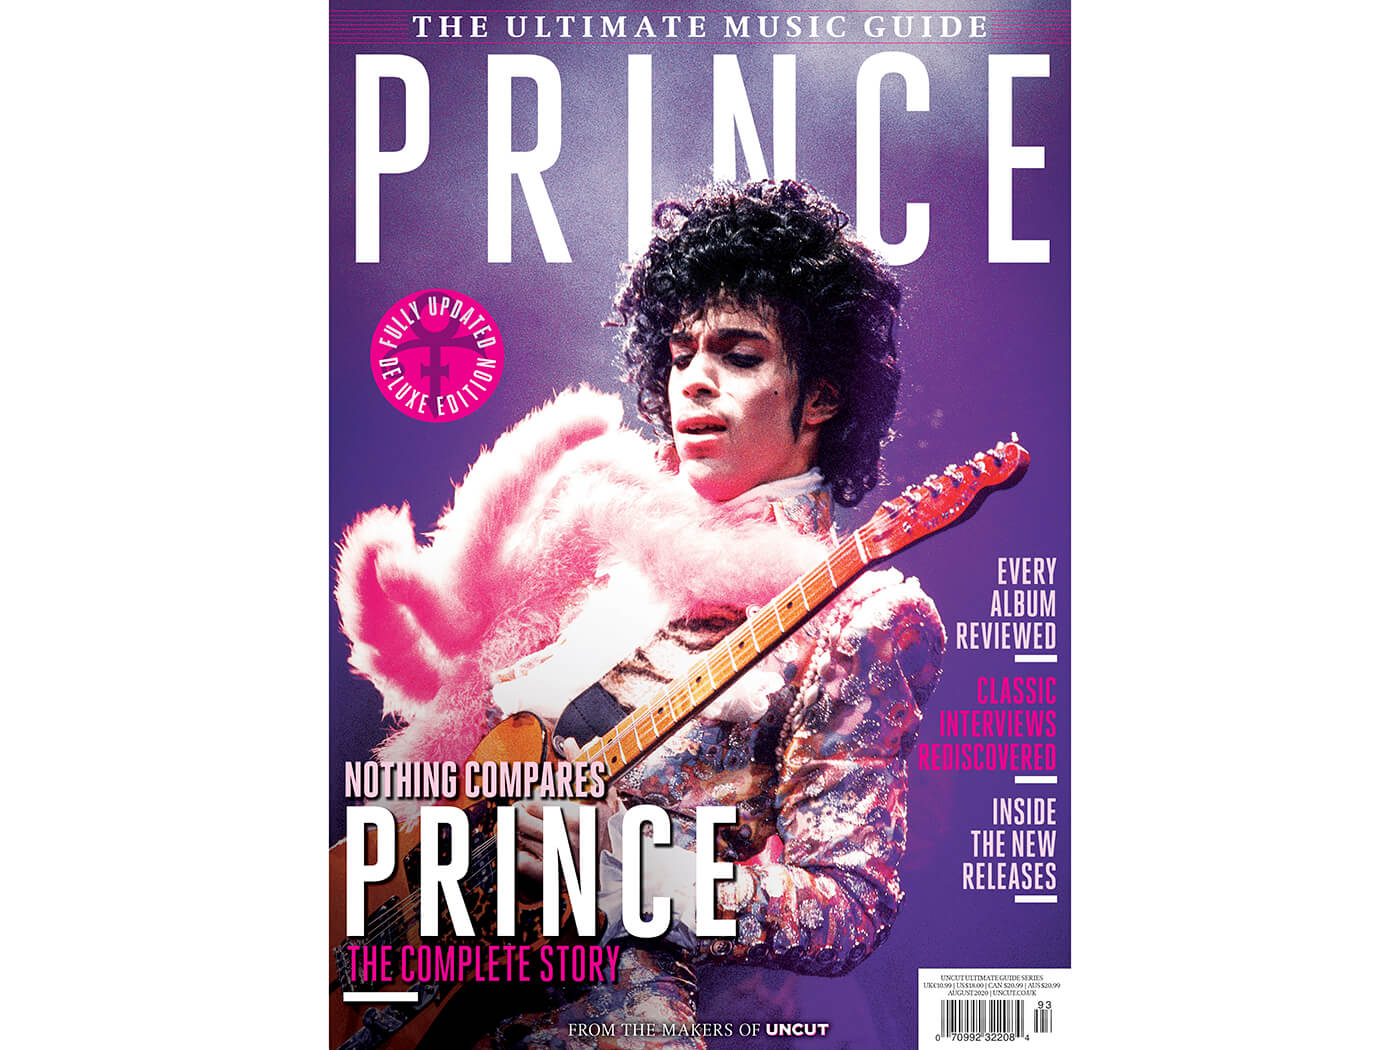 Prince – The Deluxe Ultimate Music Guide